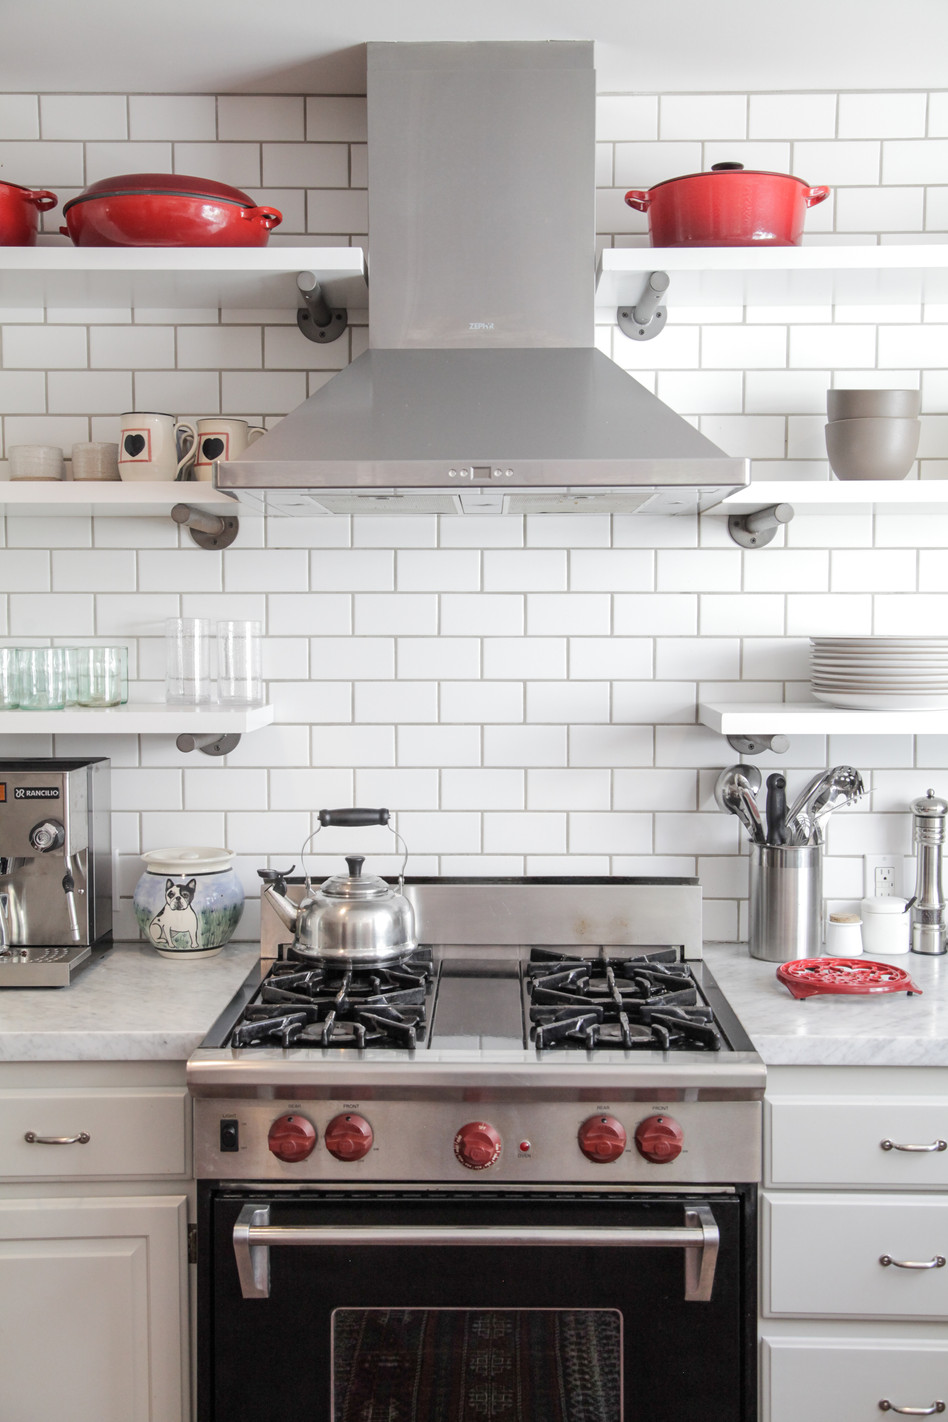 Floating shelves, subway tile, vintage stove, Le Creuset.Kitchen remodel by Lilly Walton Design